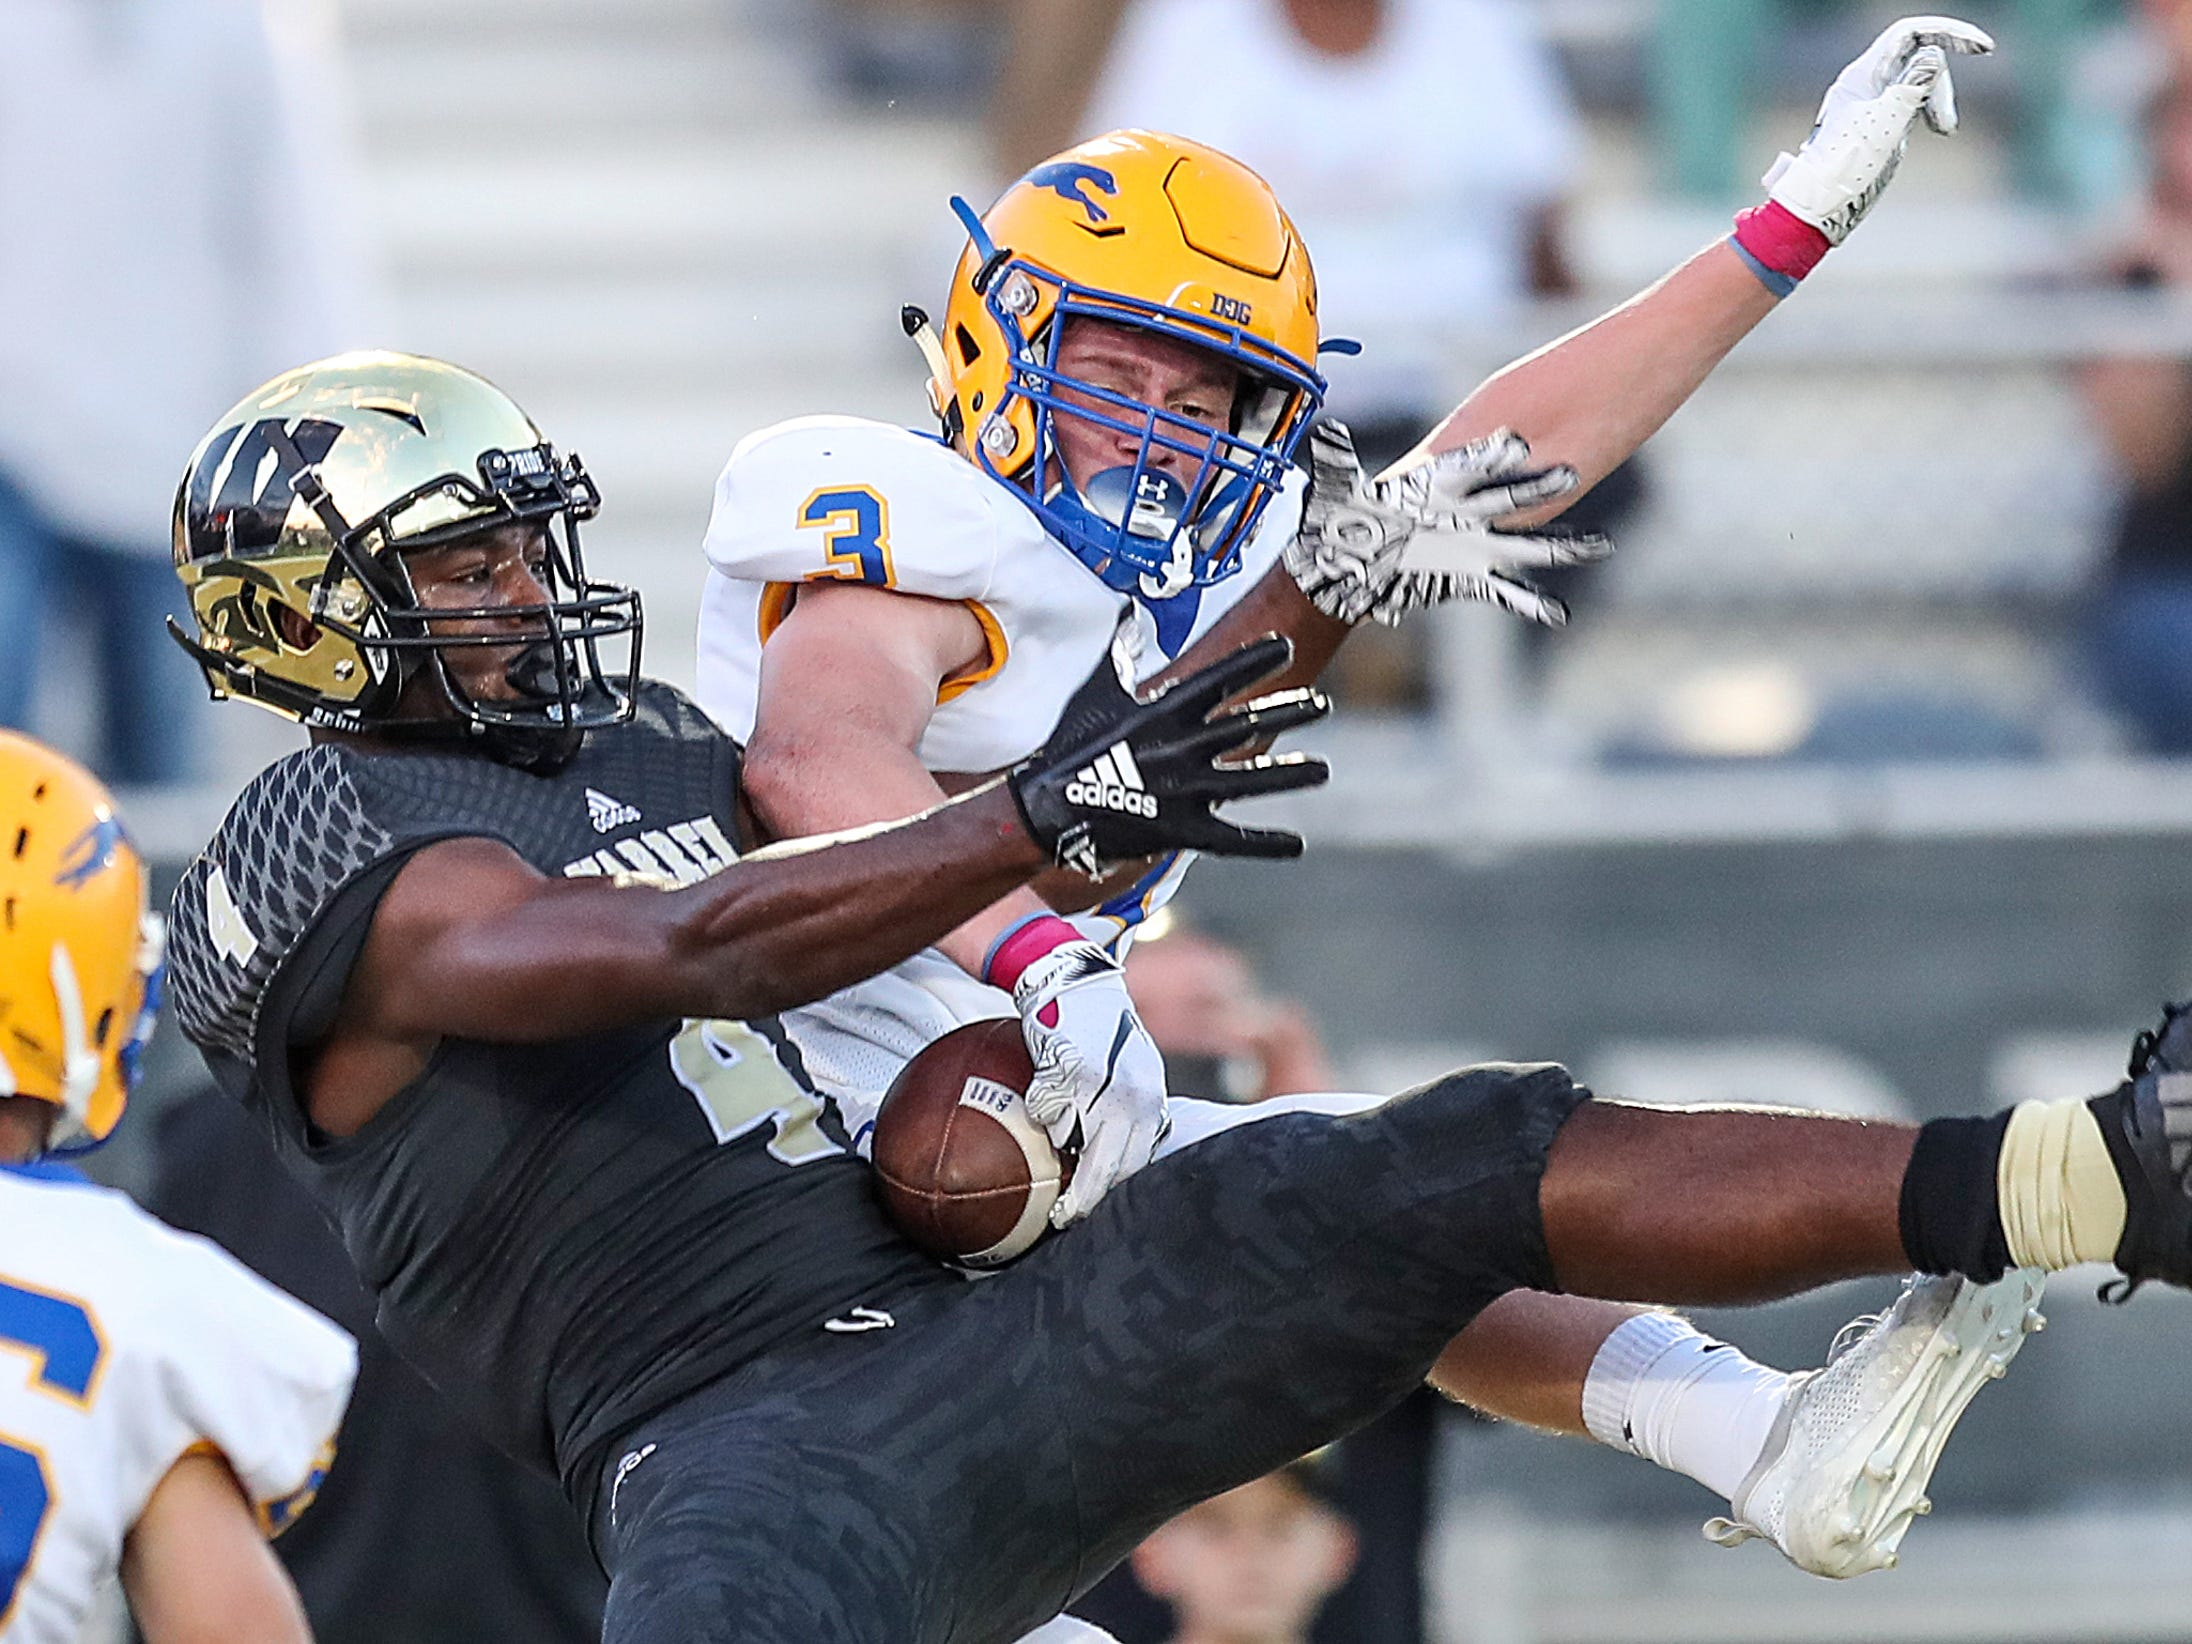 In an attempt to knock it away, Carmel Greyhounds cornerback Jake Paris (3) presses the ball against Warren Central Warriors wide receiver David Bell (4) who keeps it to score the Warriors' first touchdown of the game, in the first half of the game at Warren Central High School, Indianapolis, Ind., Friday, Oct. 5, 2018.